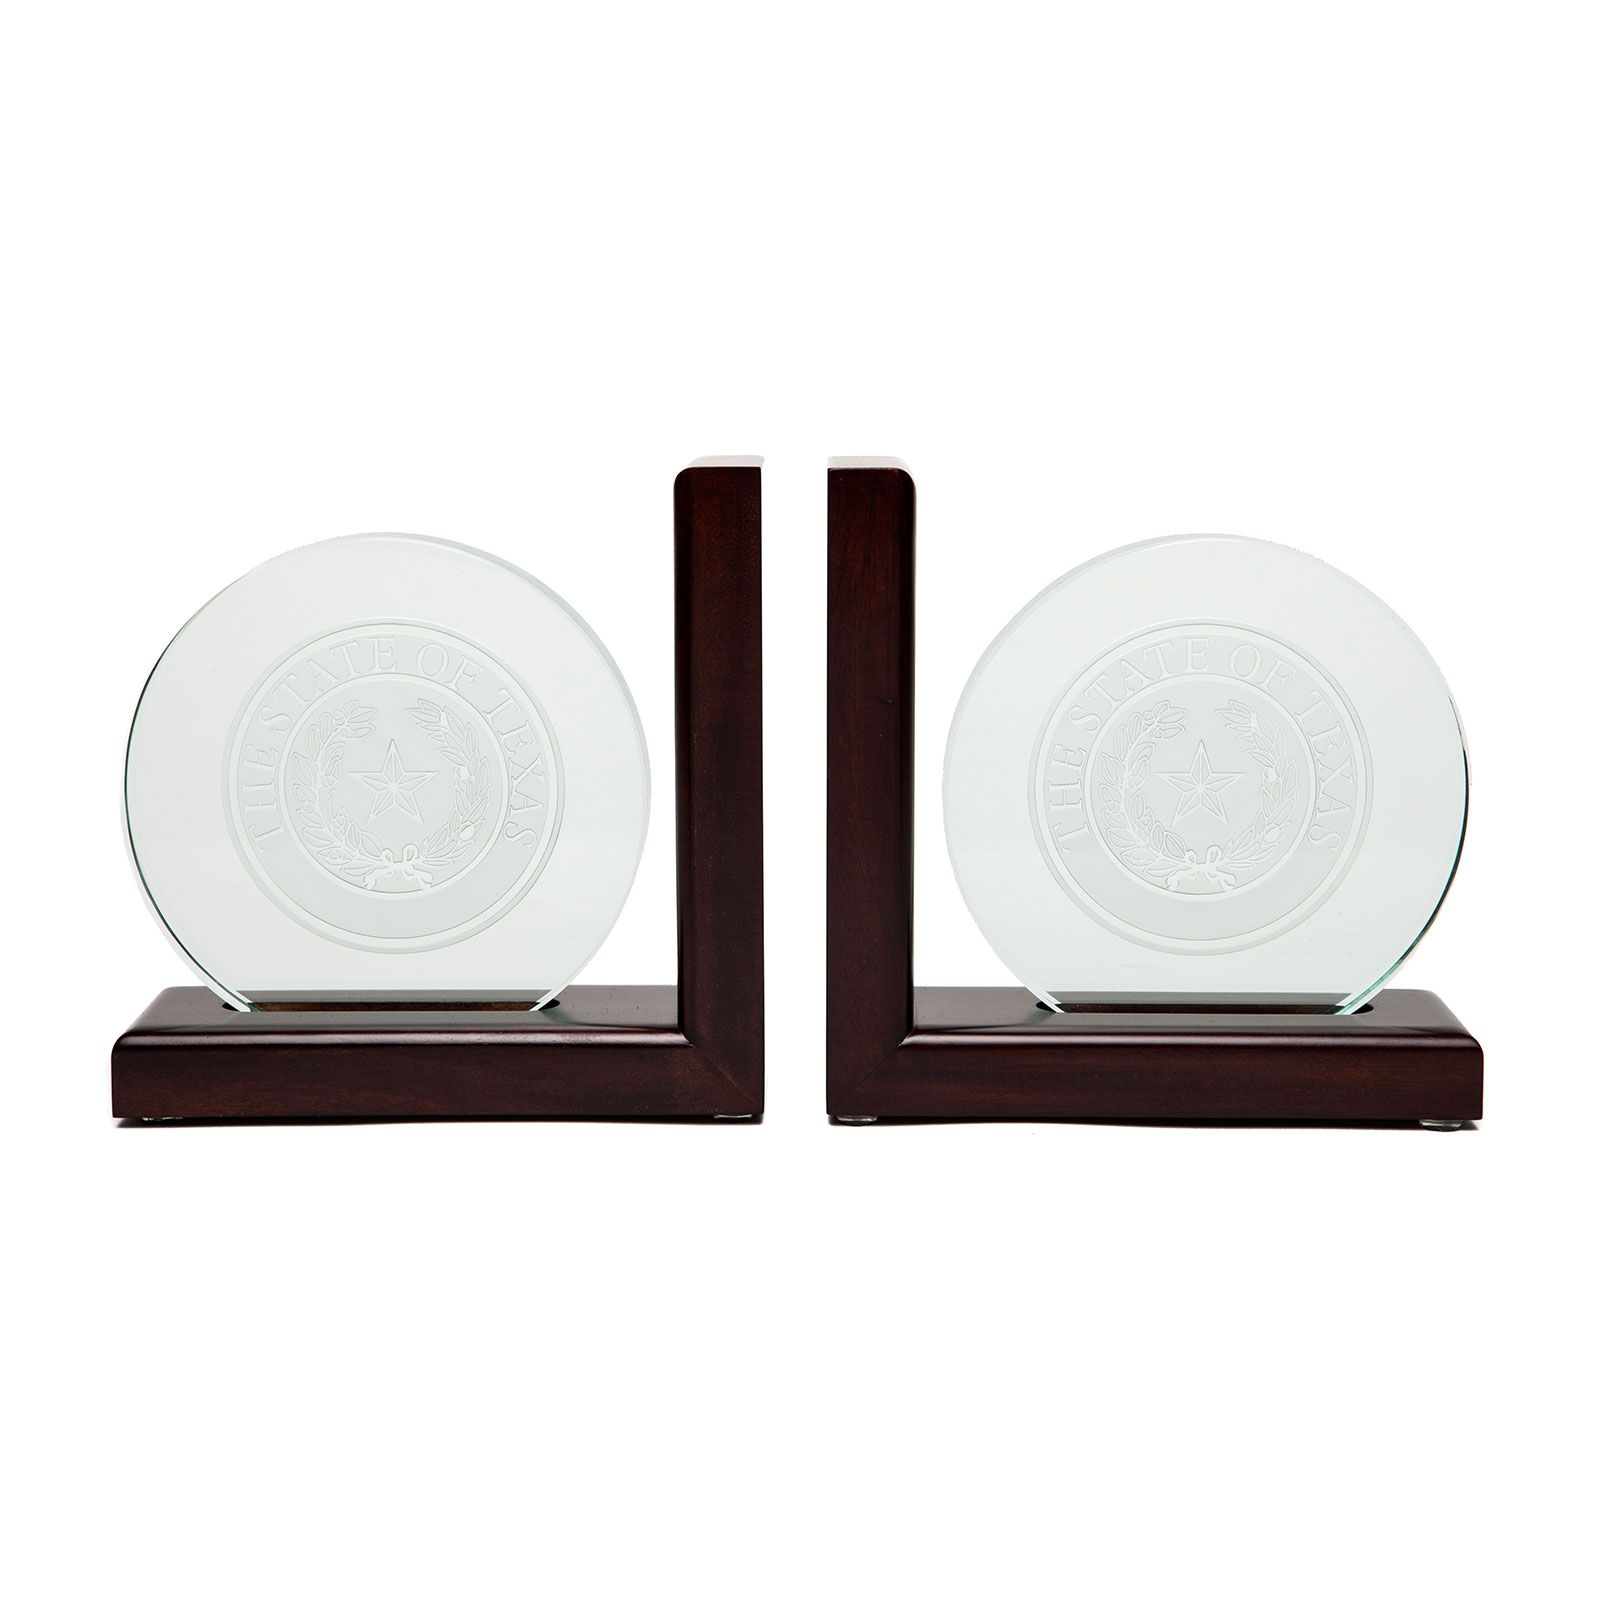 Glass and Wood Texas State Seal Bookends | Texas Capitol Gift Shop